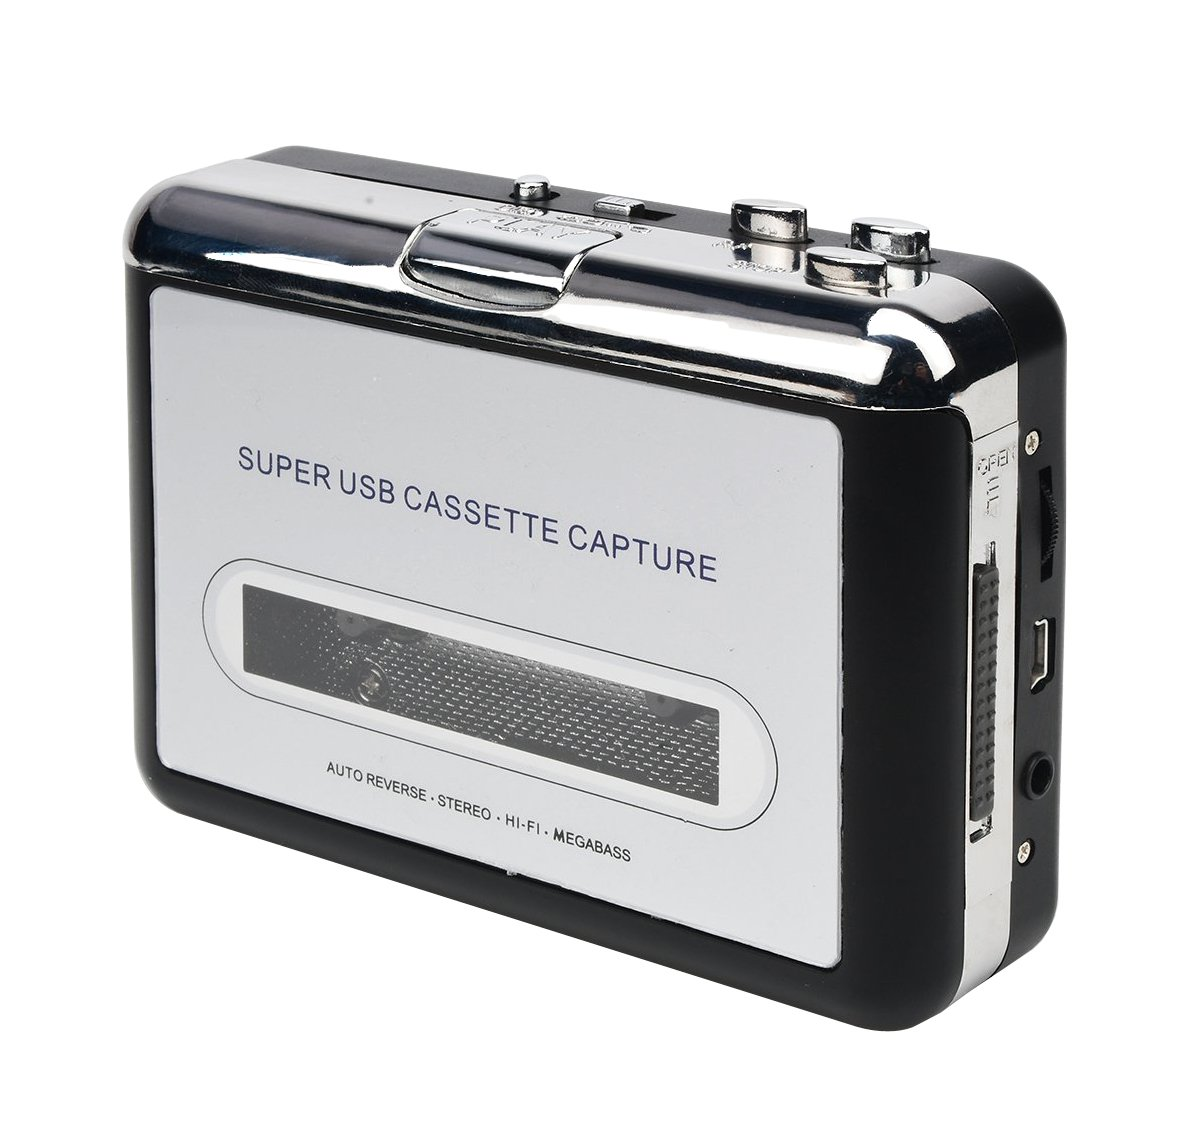 VAKABOX USB Cassette Capture Old Cassette Tape to MP3 Converter, USB Flash Driver U Disk, Walkman Player, Auto-Reverse